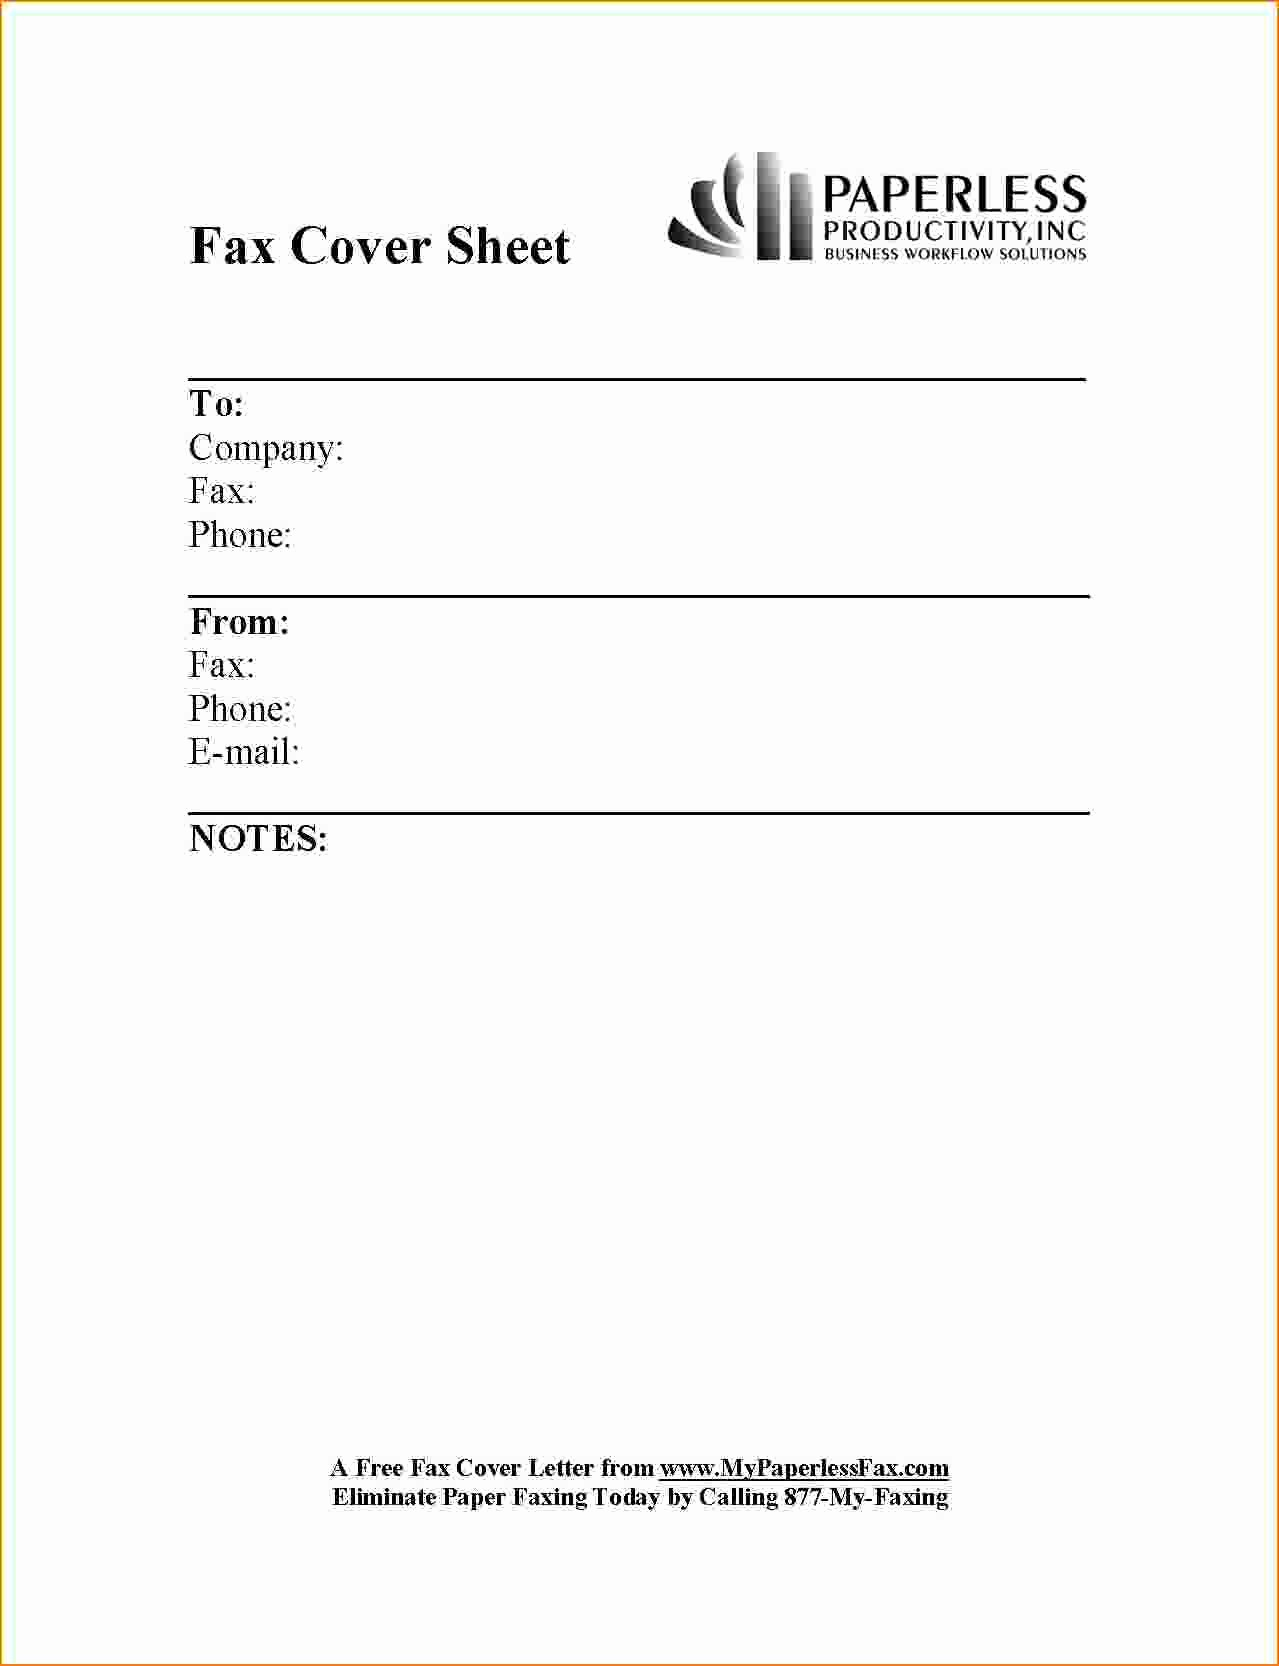 Sample Of Fax Cover Letter Luxury 6 Example Fax Cover Sheet